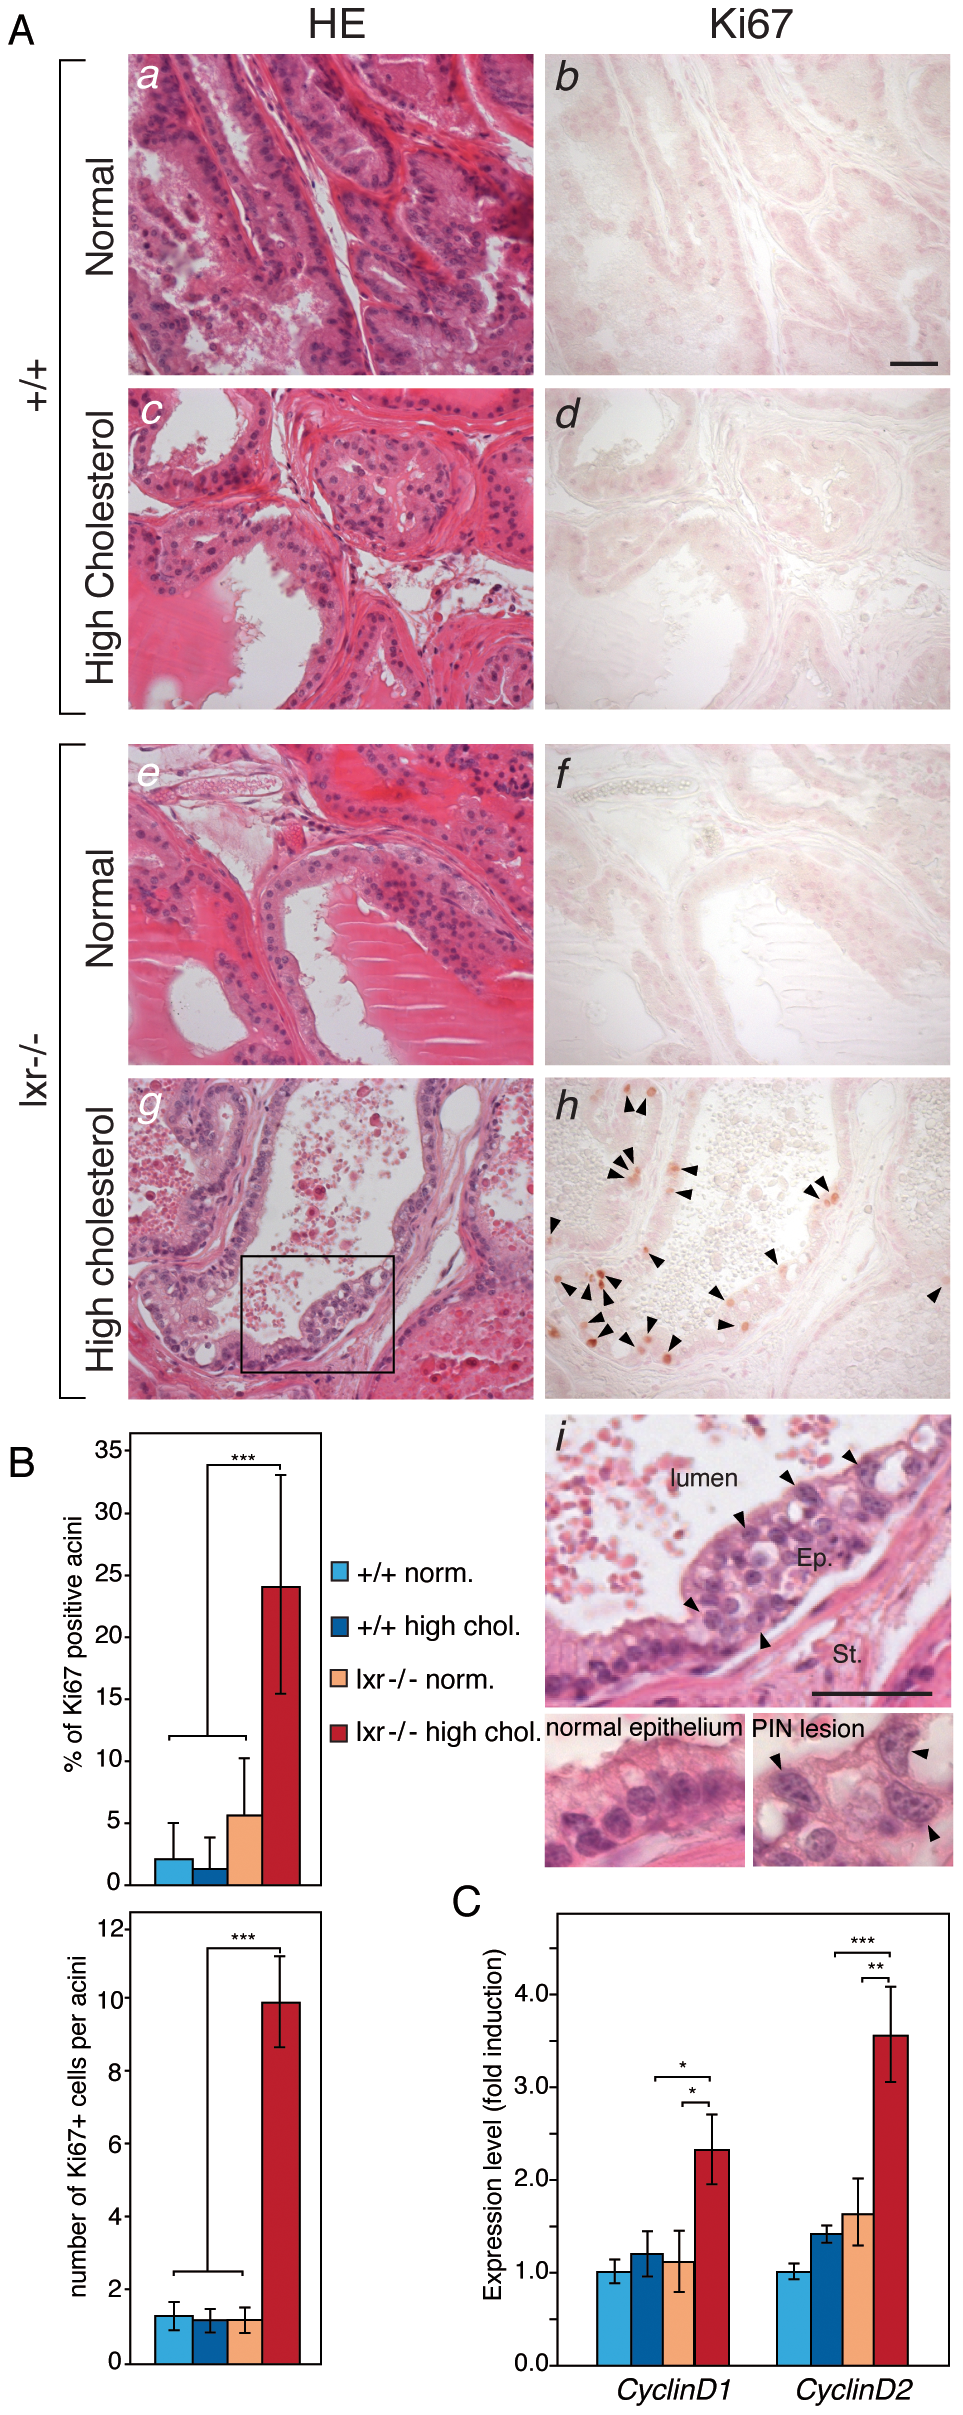 High-cholesterol diet induces proliferation in LXR mutant mouse prostate.